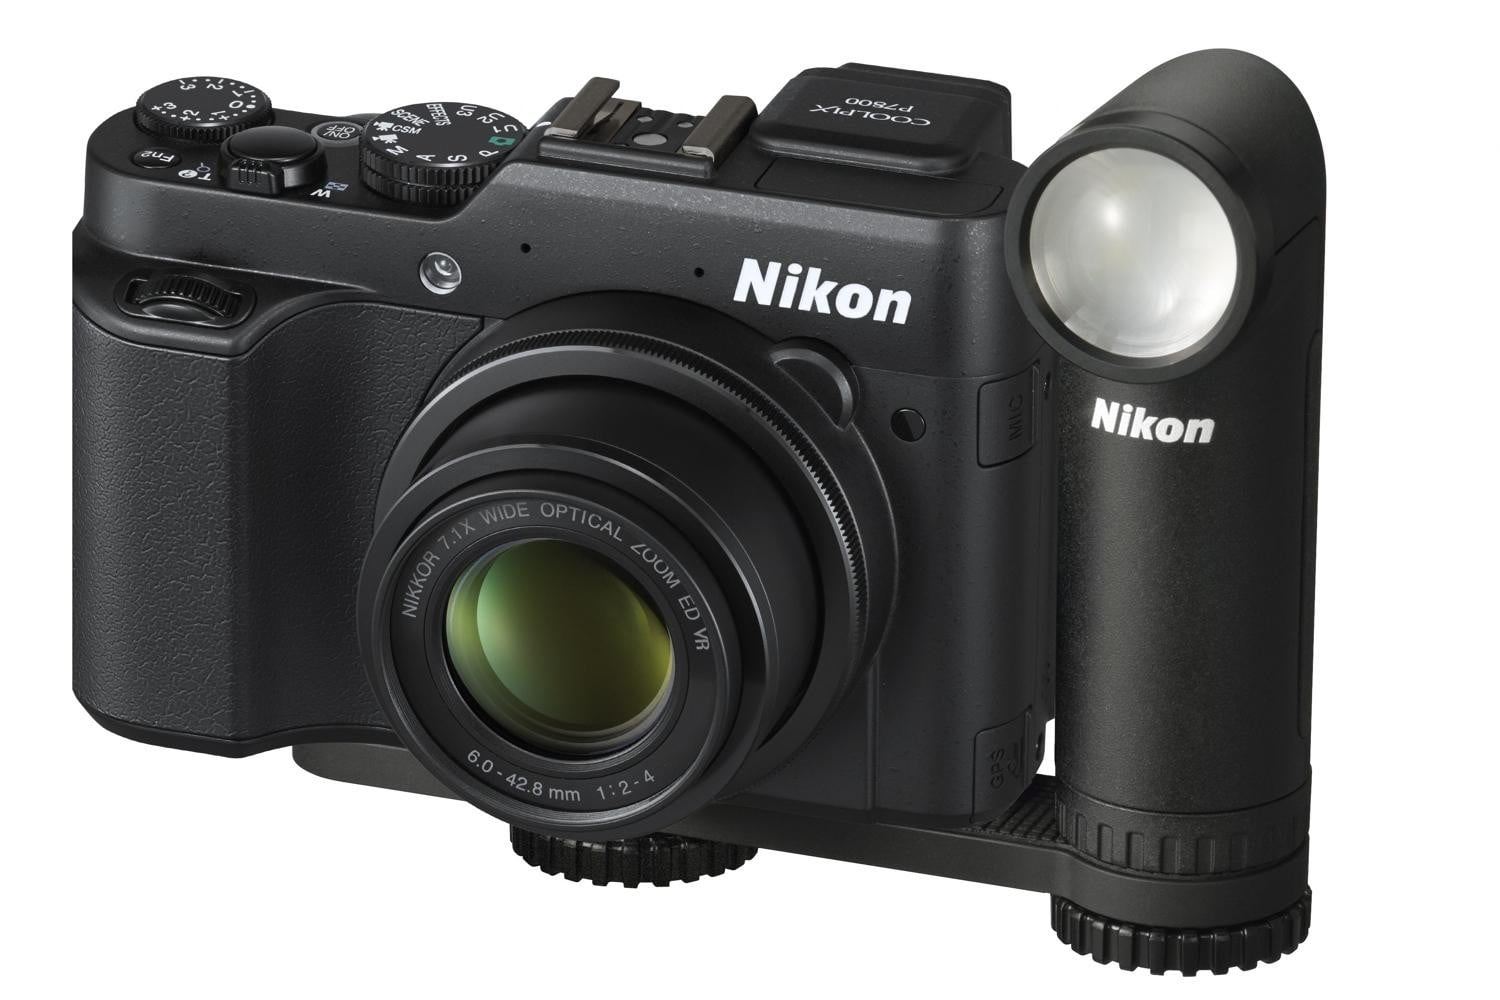 Full Frame Mirrorless Vs Dslr Nikon Announces New Coolpix P7800 And S02 Cameras And Led